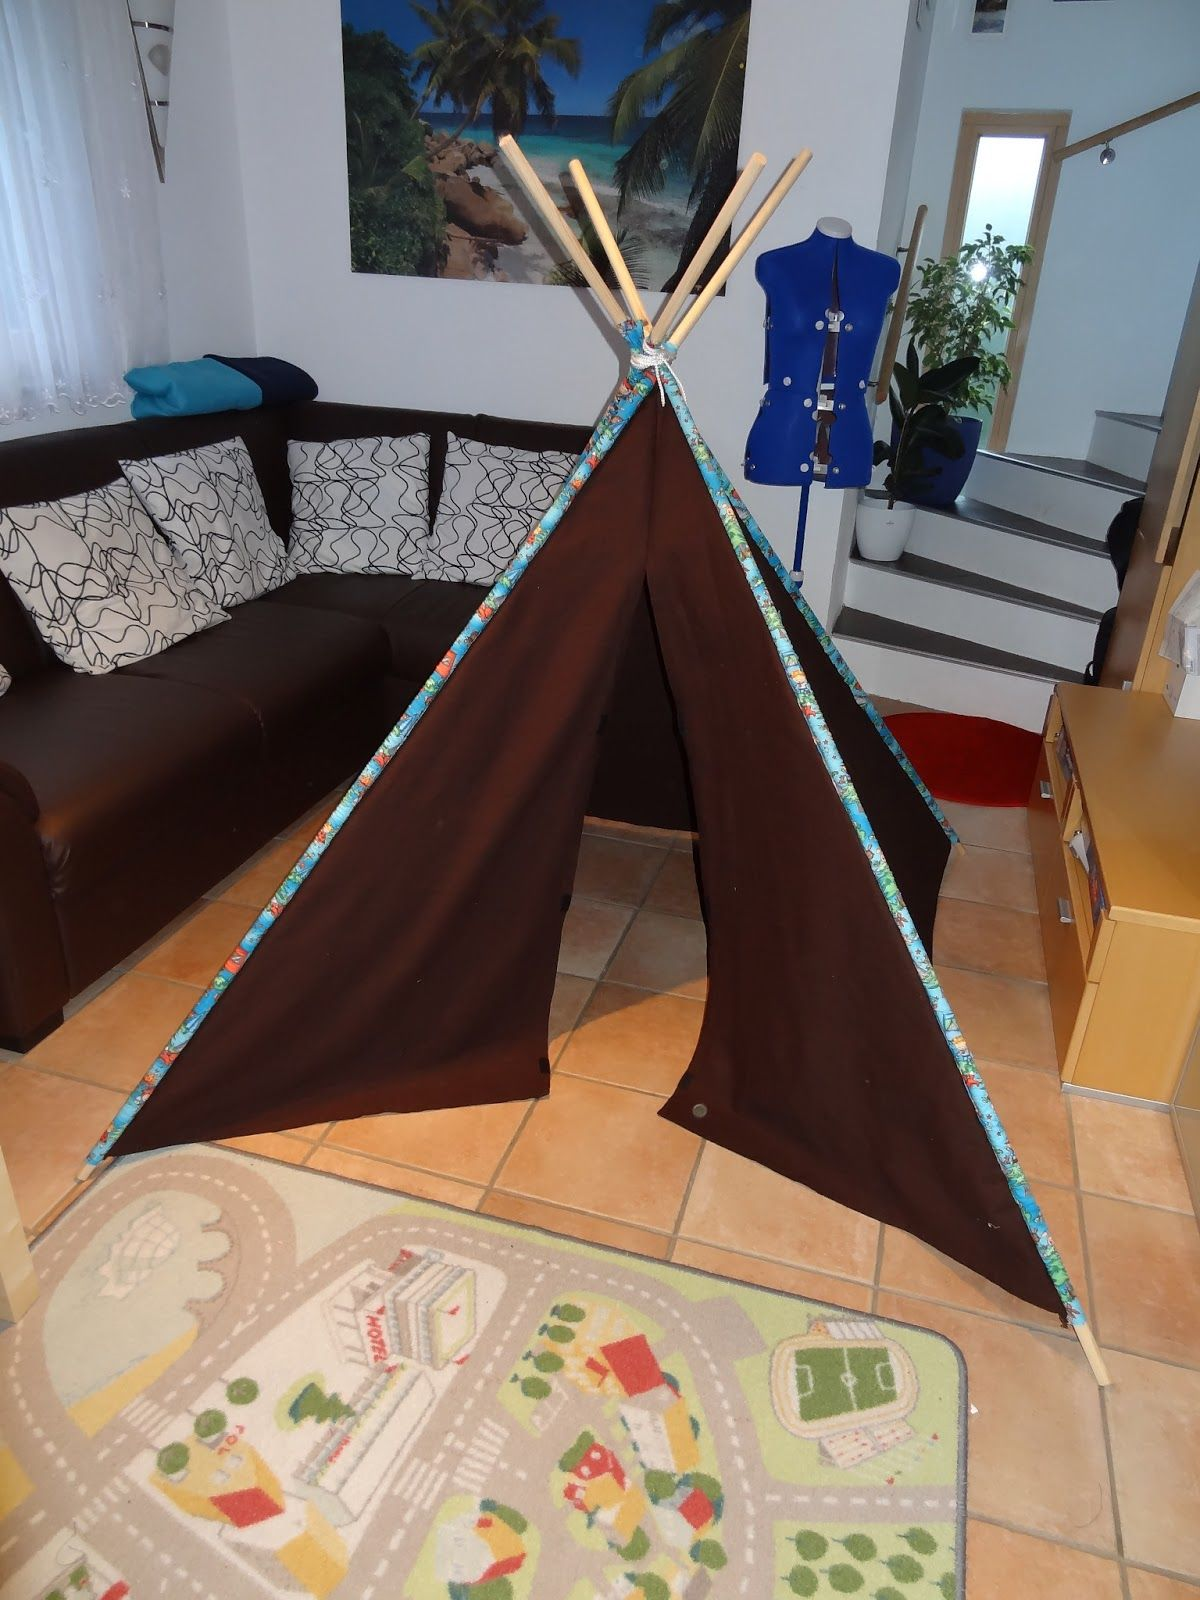 alefe 39 s blog tipi indianerzelt teepee zelt wigwam eine anleitung m dchen. Black Bedroom Furniture Sets. Home Design Ideas